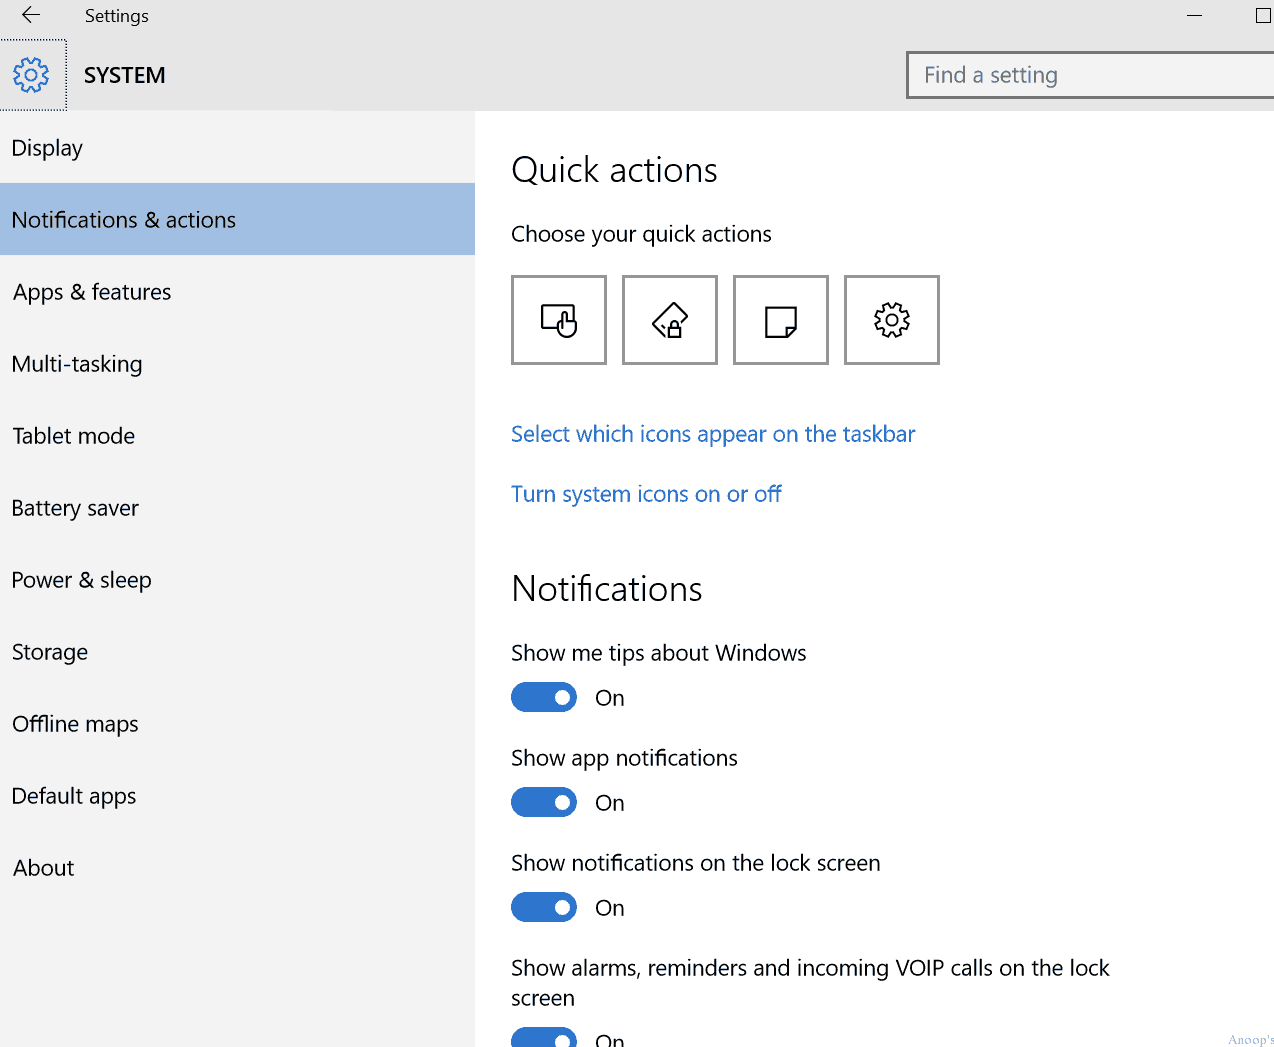 Windows 10 command line shortcuts or run commands with settings menu